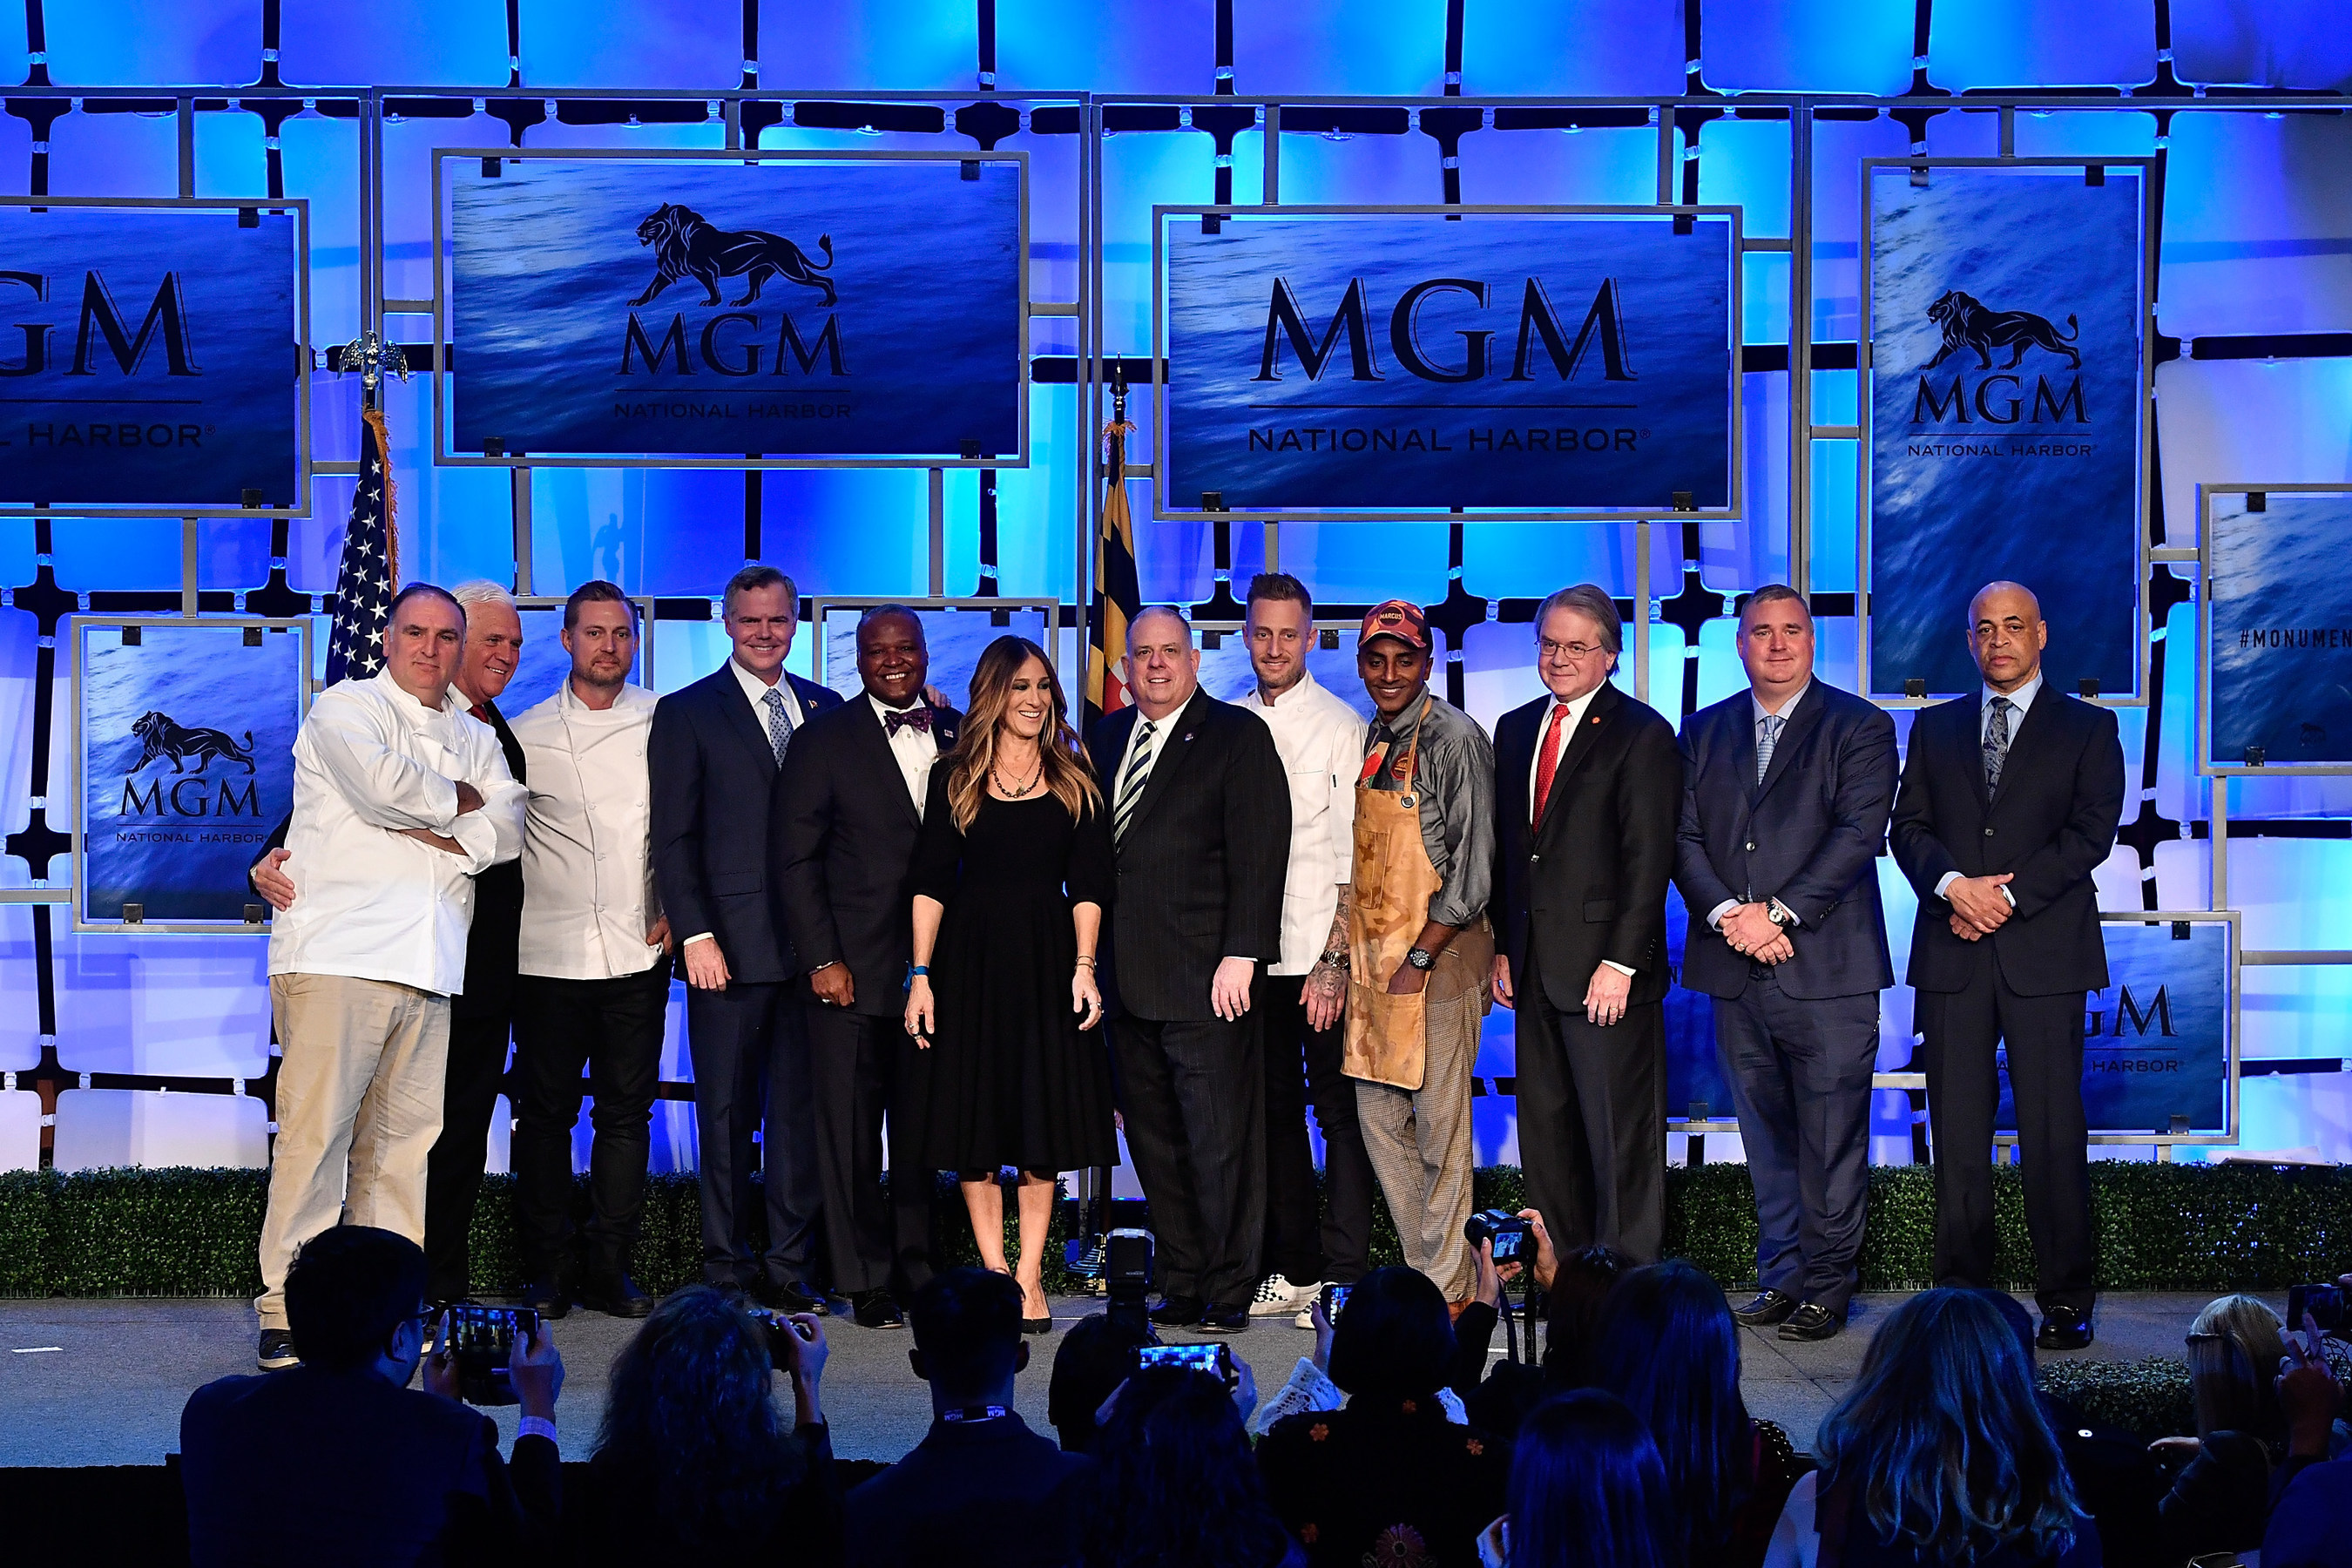 MGM National Harbor Sets Unforgettable Impression With